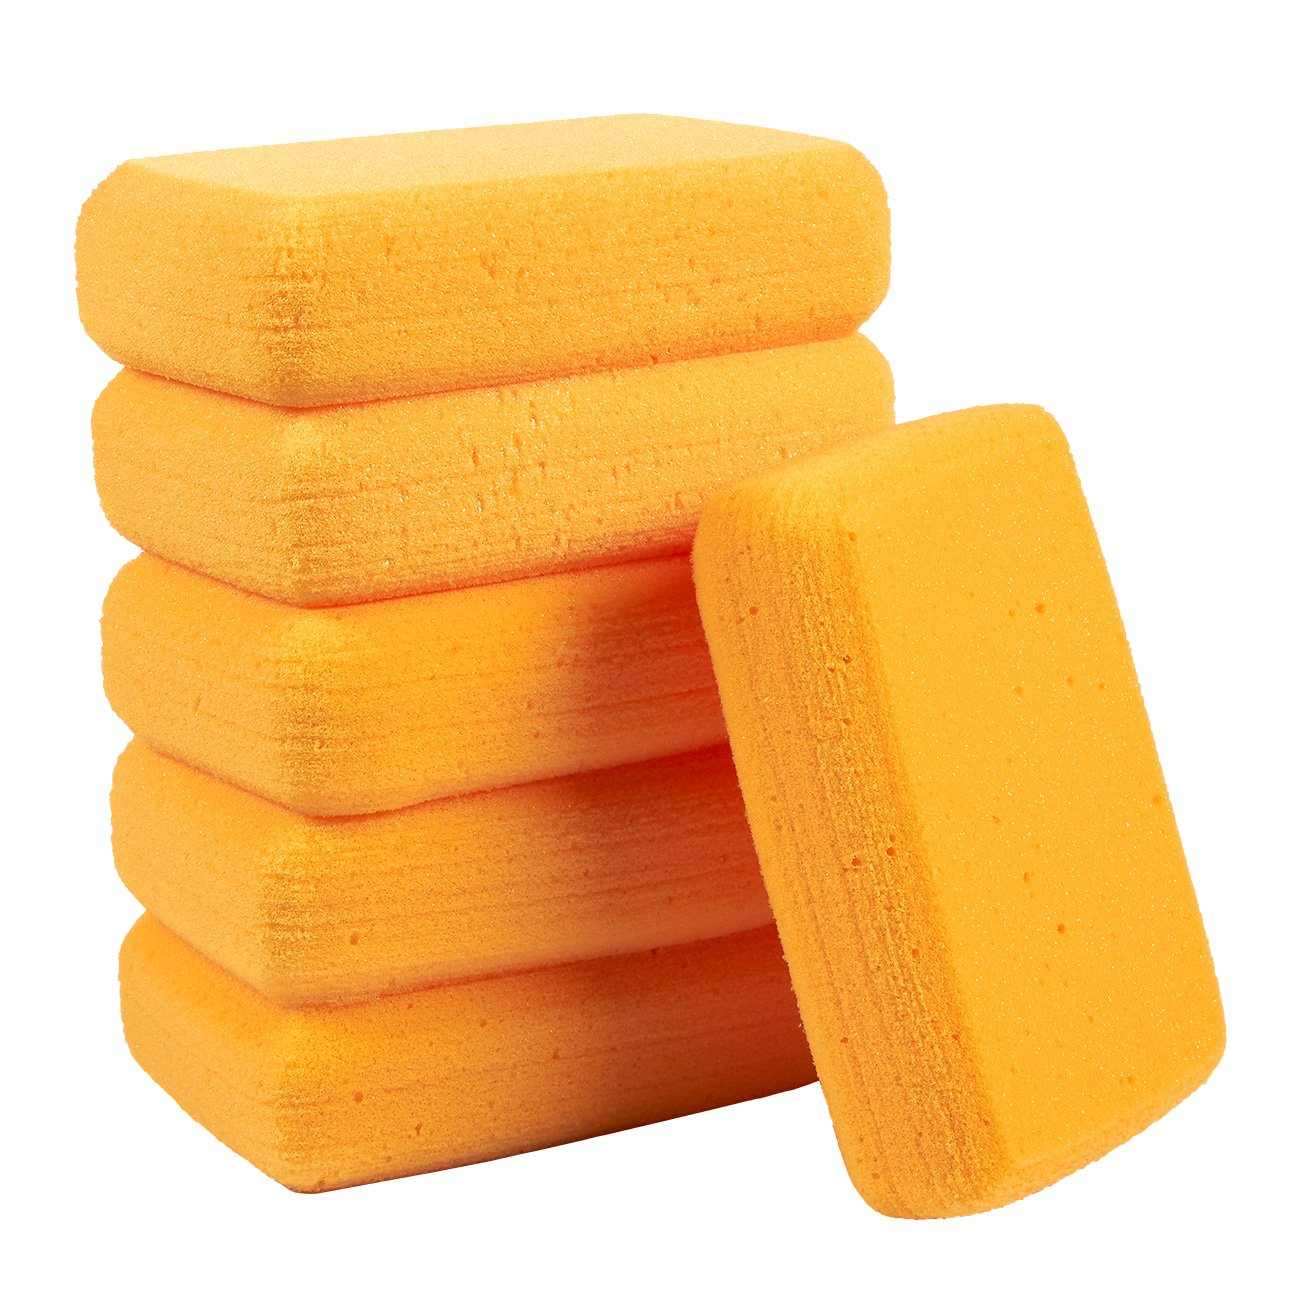 Blue Panda Pack of 6 Synthetic Sponges - Large Craft Sponges - Ideal for Painting, Crafts, Pottery, Clay, Household Use, 7.5 x 2 x 5 Inches, Orange by Blue Panda